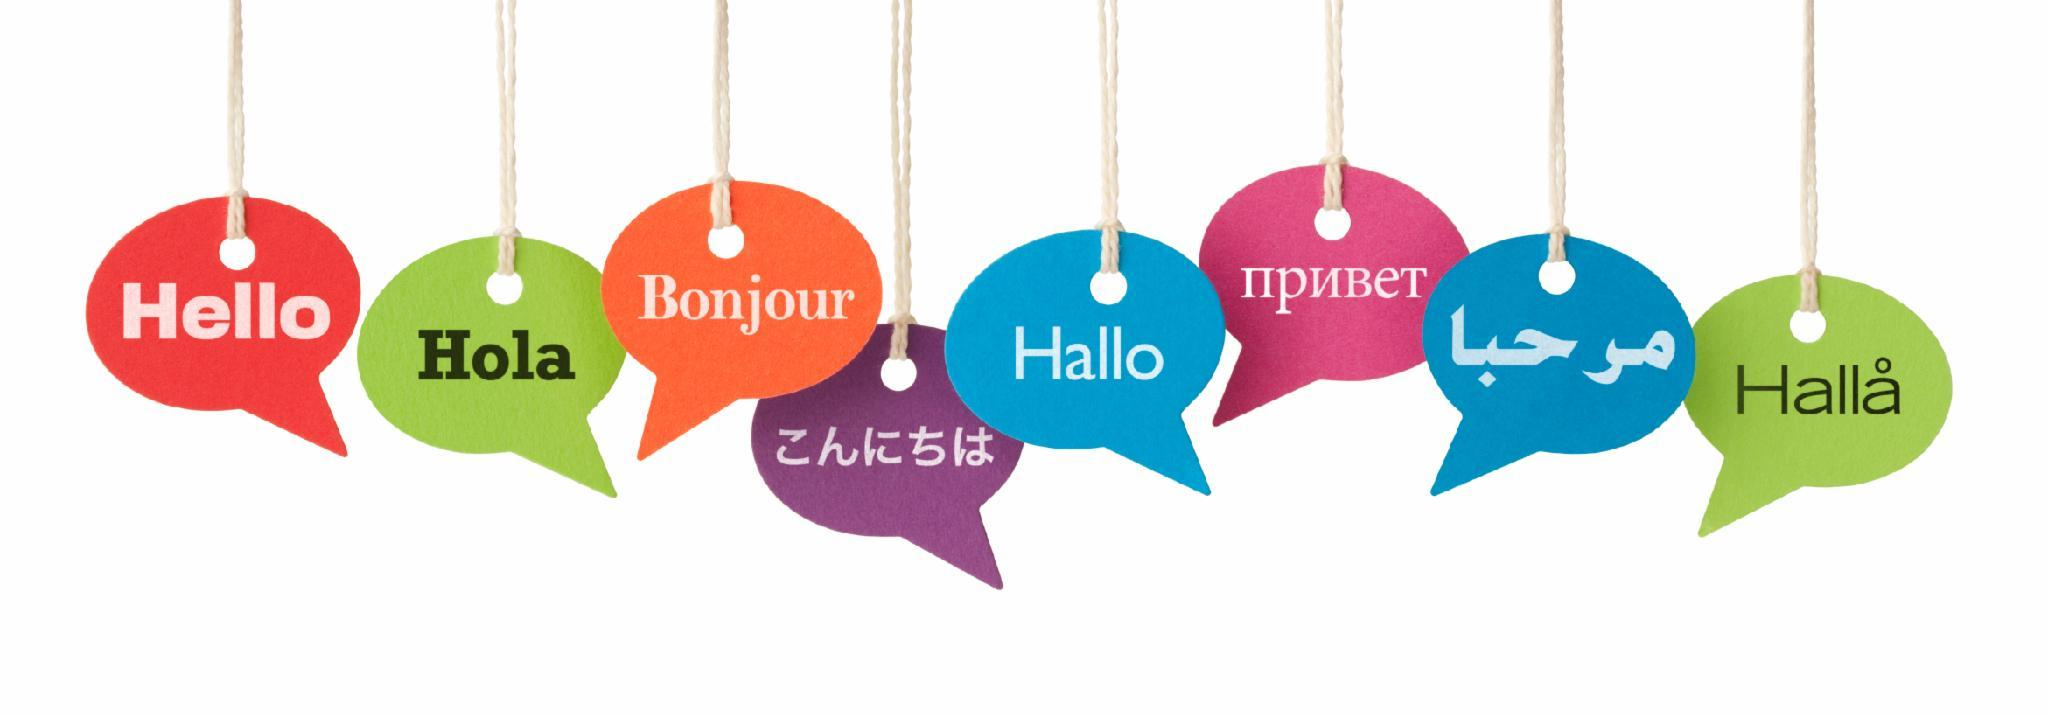 What's the best way to learn a language that you've never spoken before?